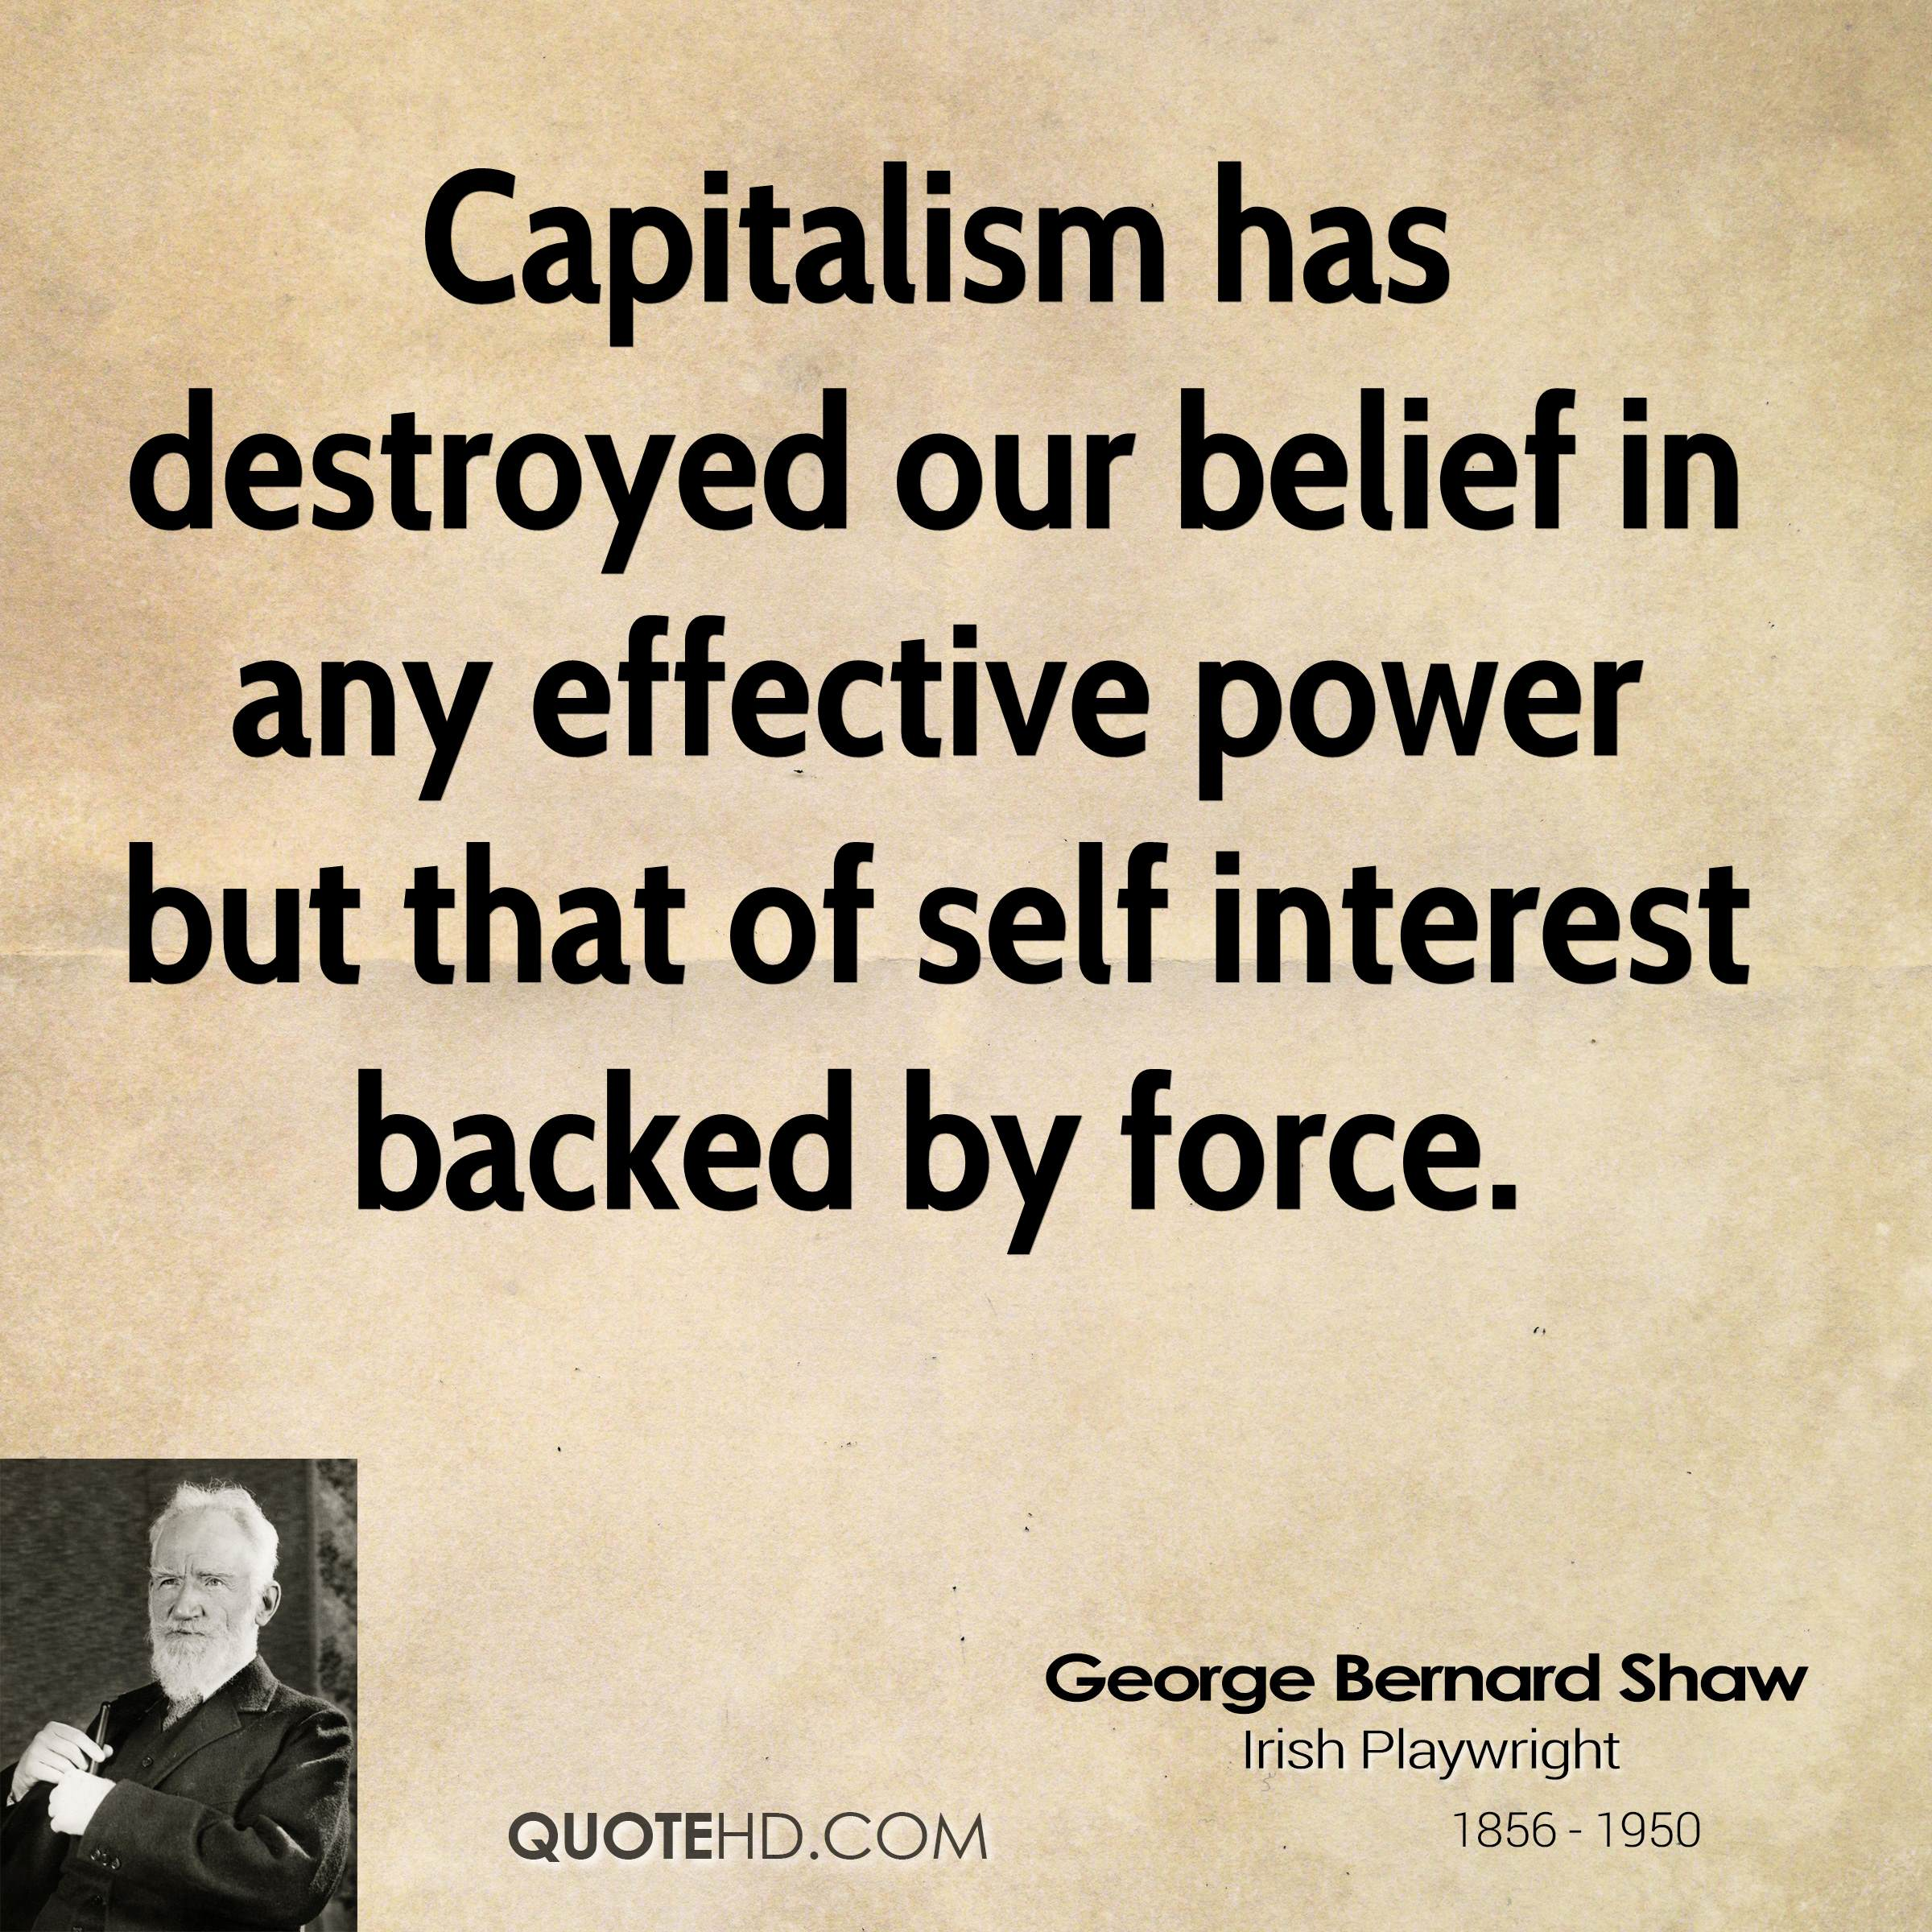 Capitalism has destroyed our belief in any effective power but that of self interest backed by force.